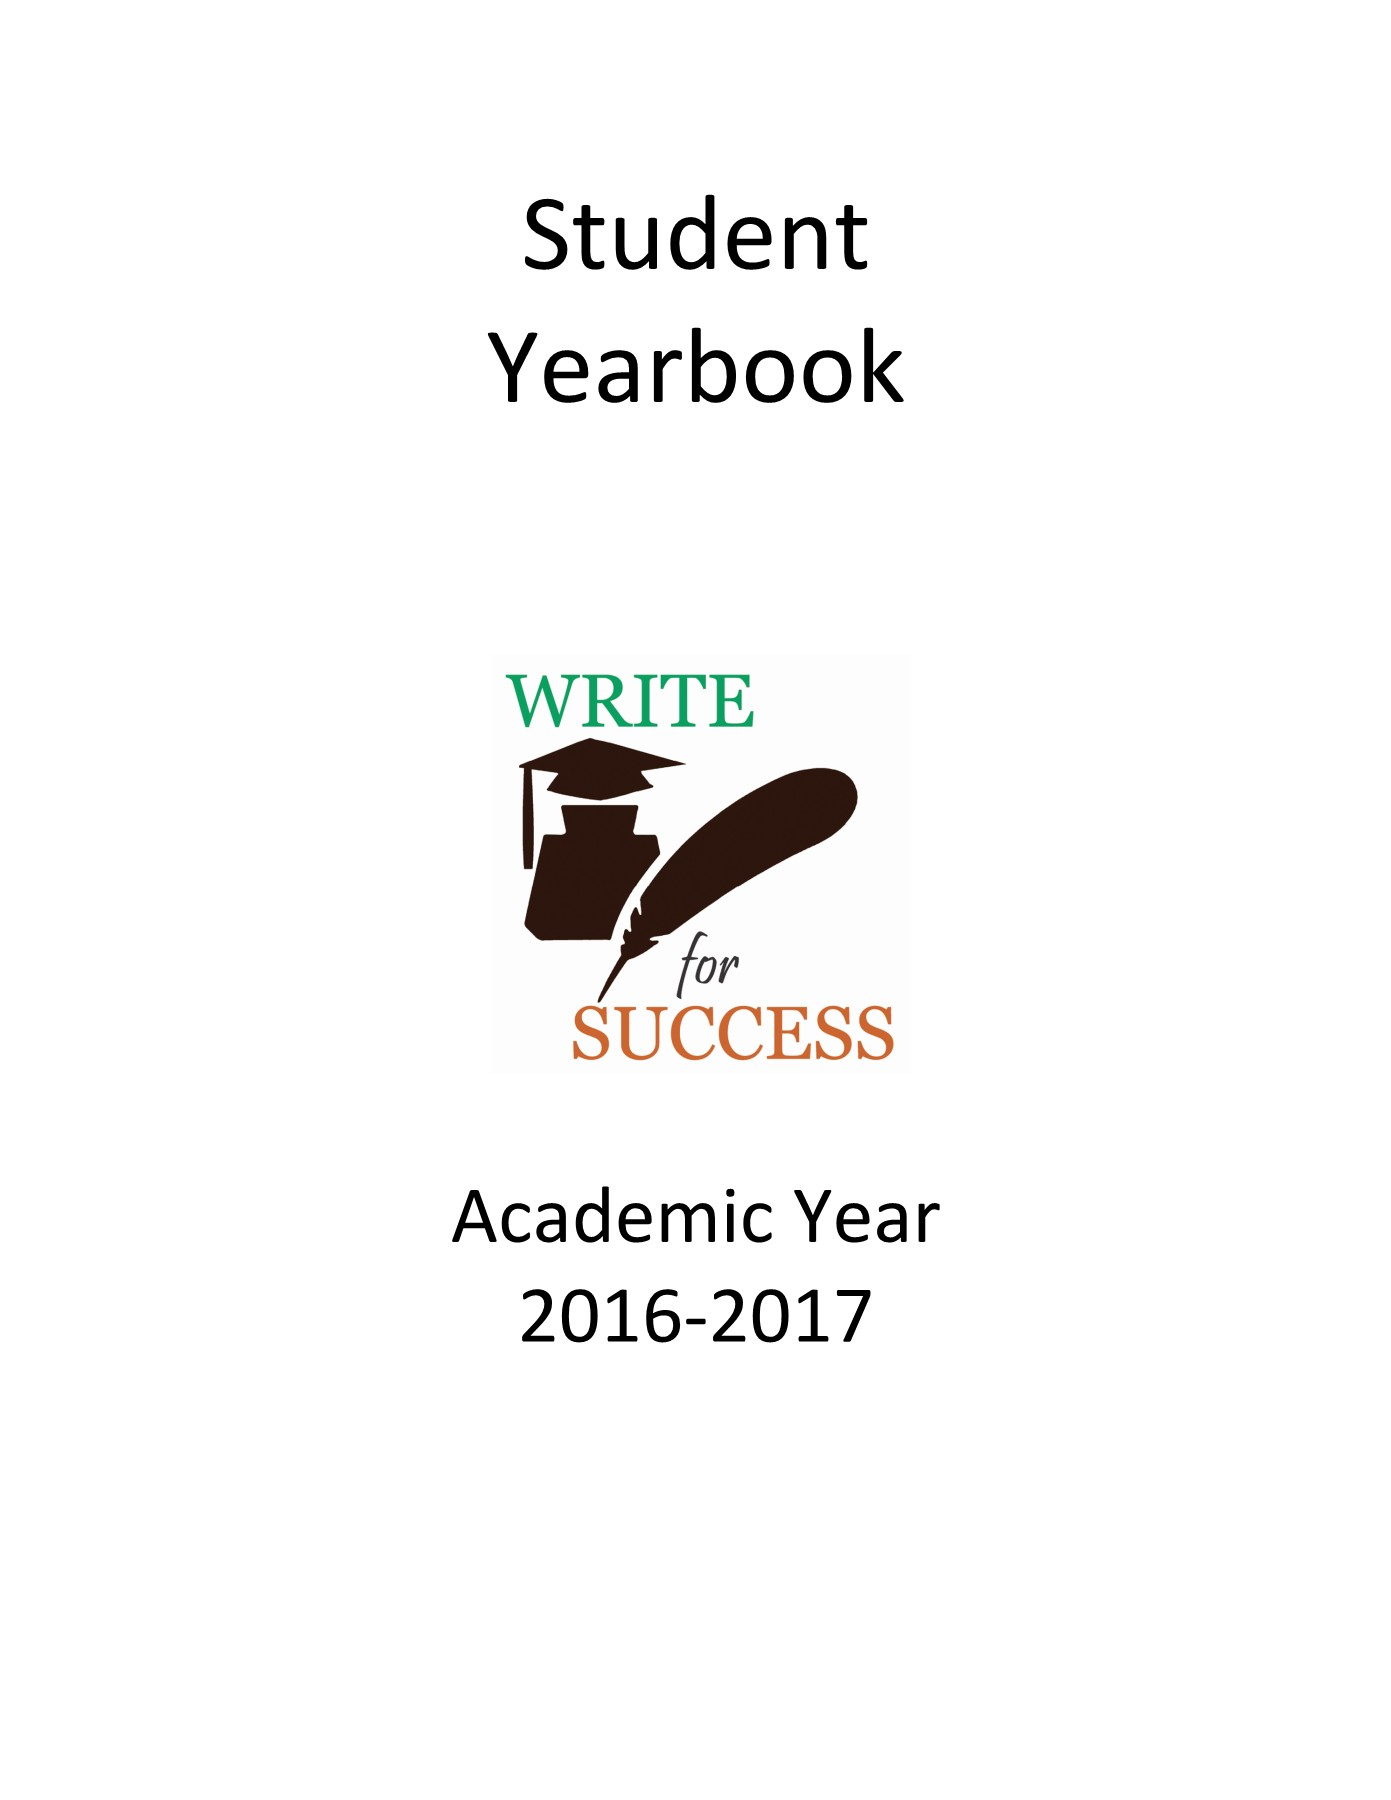 Microsoft Word - 2016 2017 Yearbook Pages 101 - 150 - Text